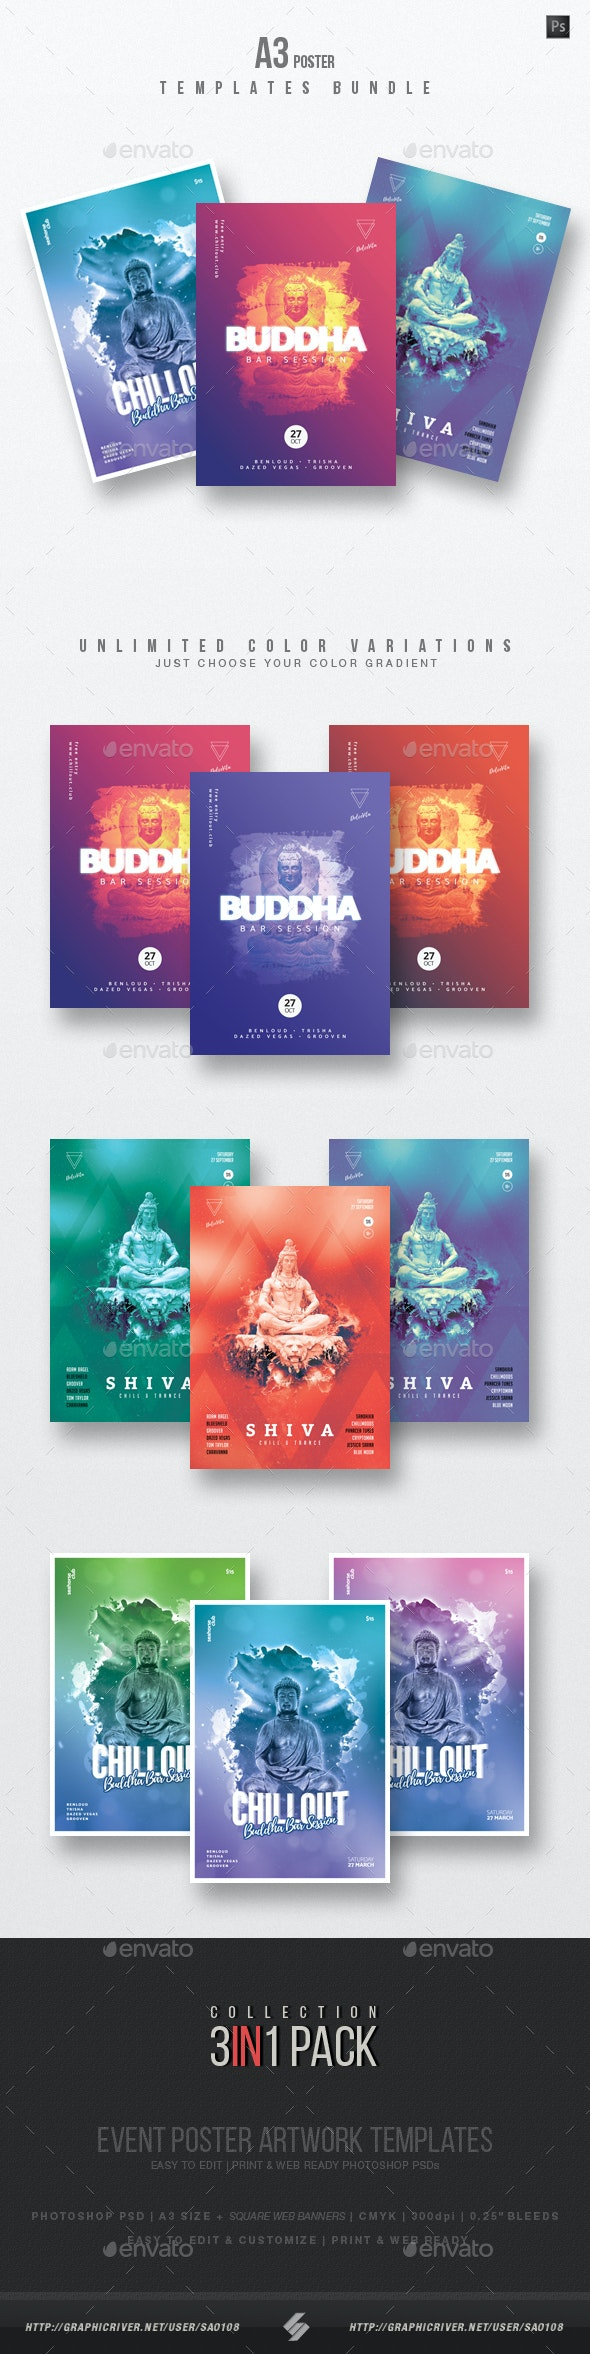 Buddha Bar Chillout vol.2 - Event Flyer Templates Bundle - Clubs & Parties Events